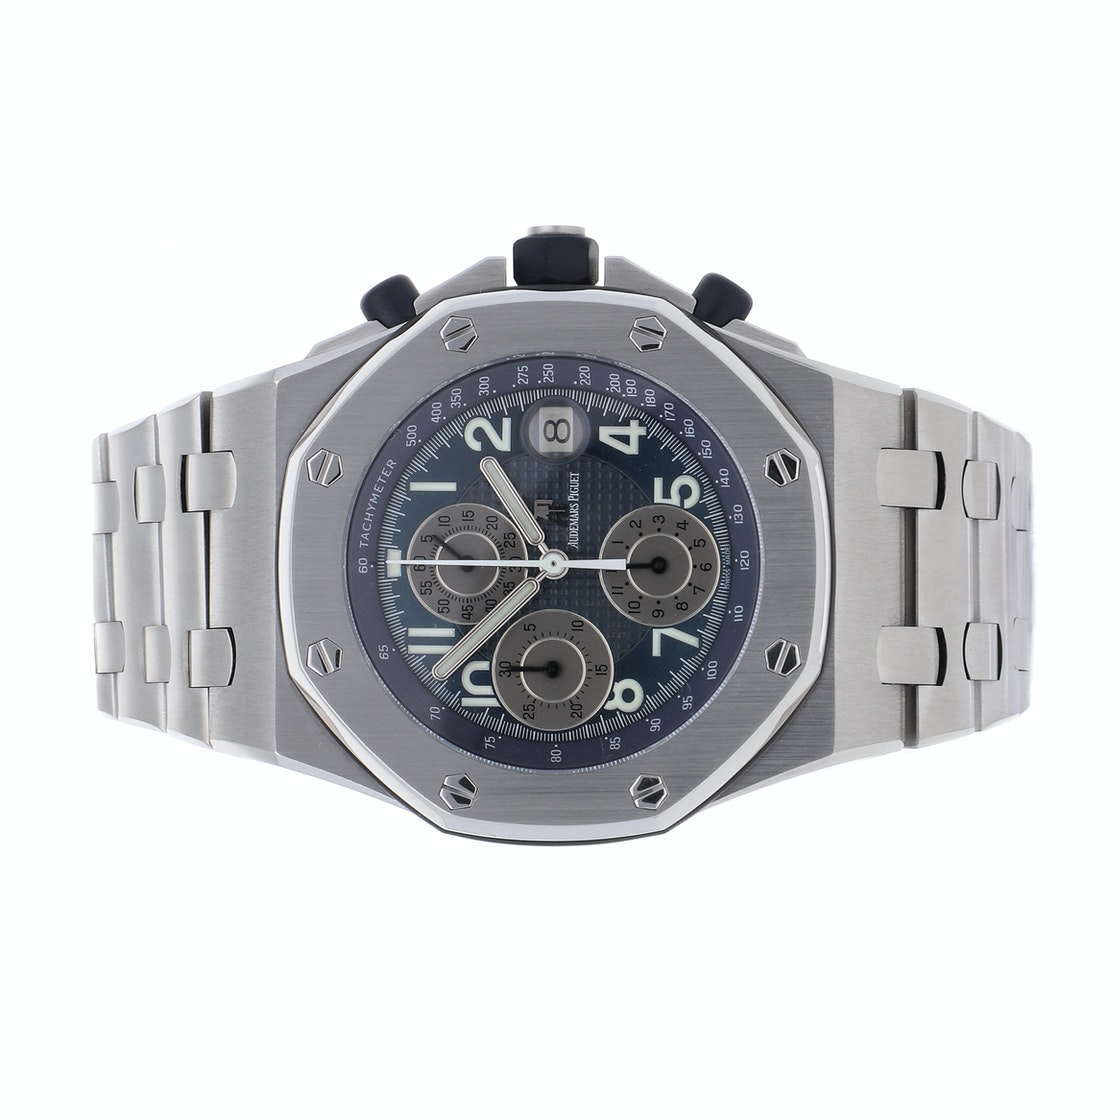 Audemars Piguet Royal Oak Offshore Chronograph 25721ST.OO.1000ST.05